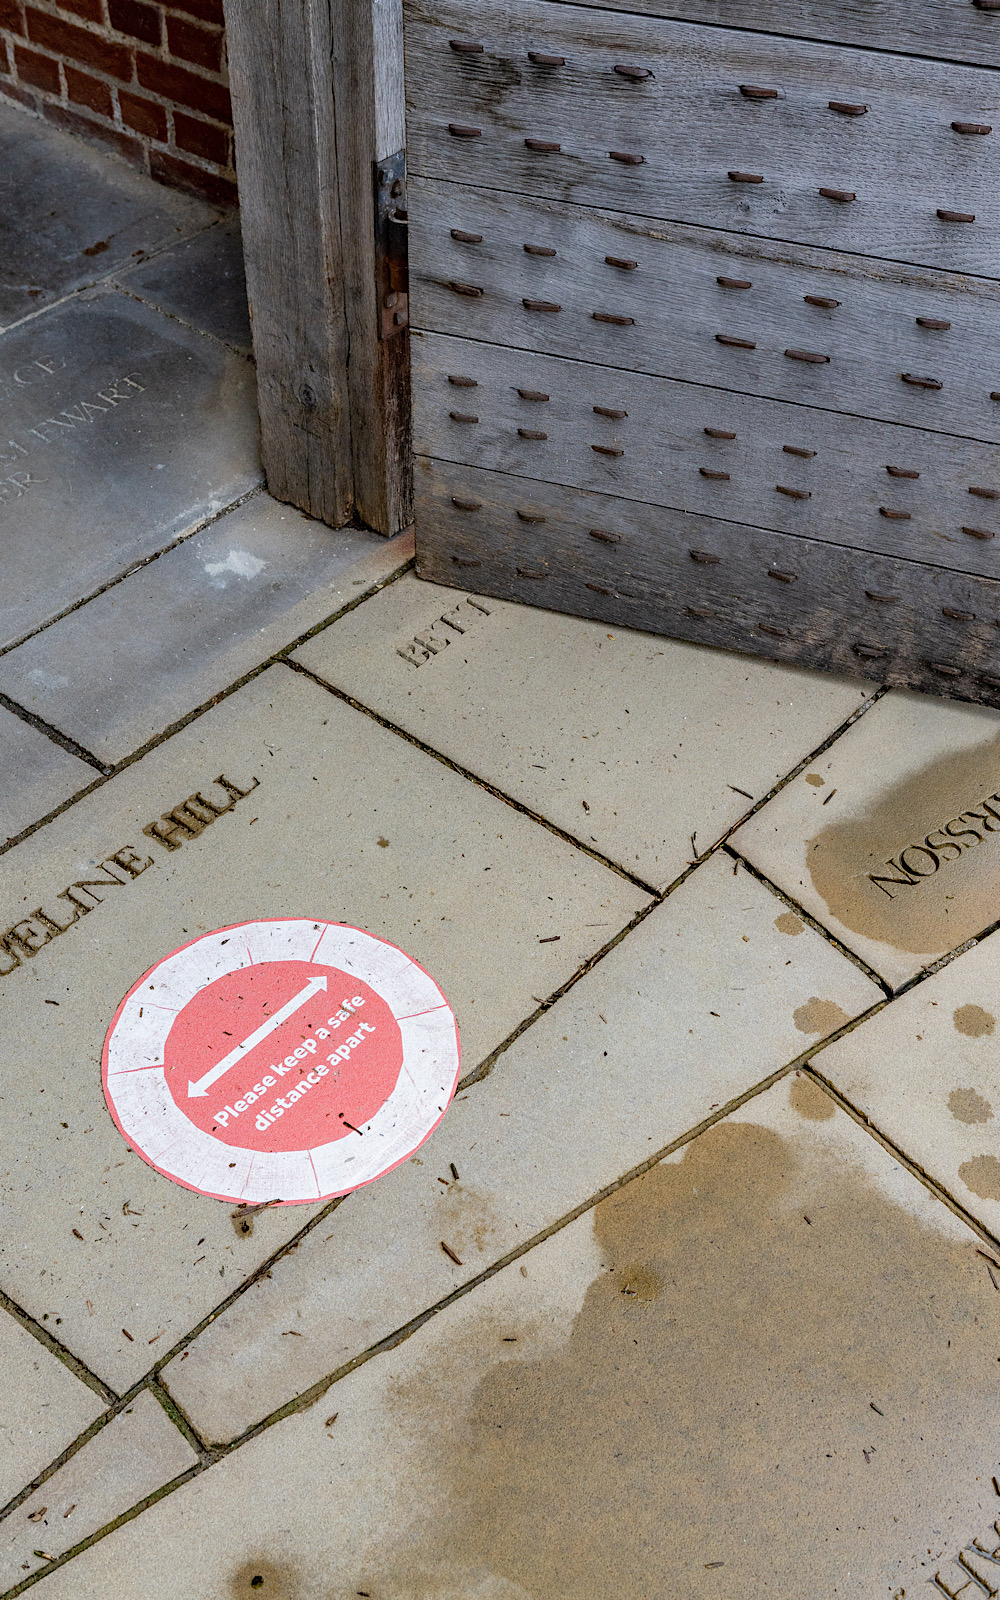 A red sticker on a stone floor reminds people to keep a safe distance apart from each other